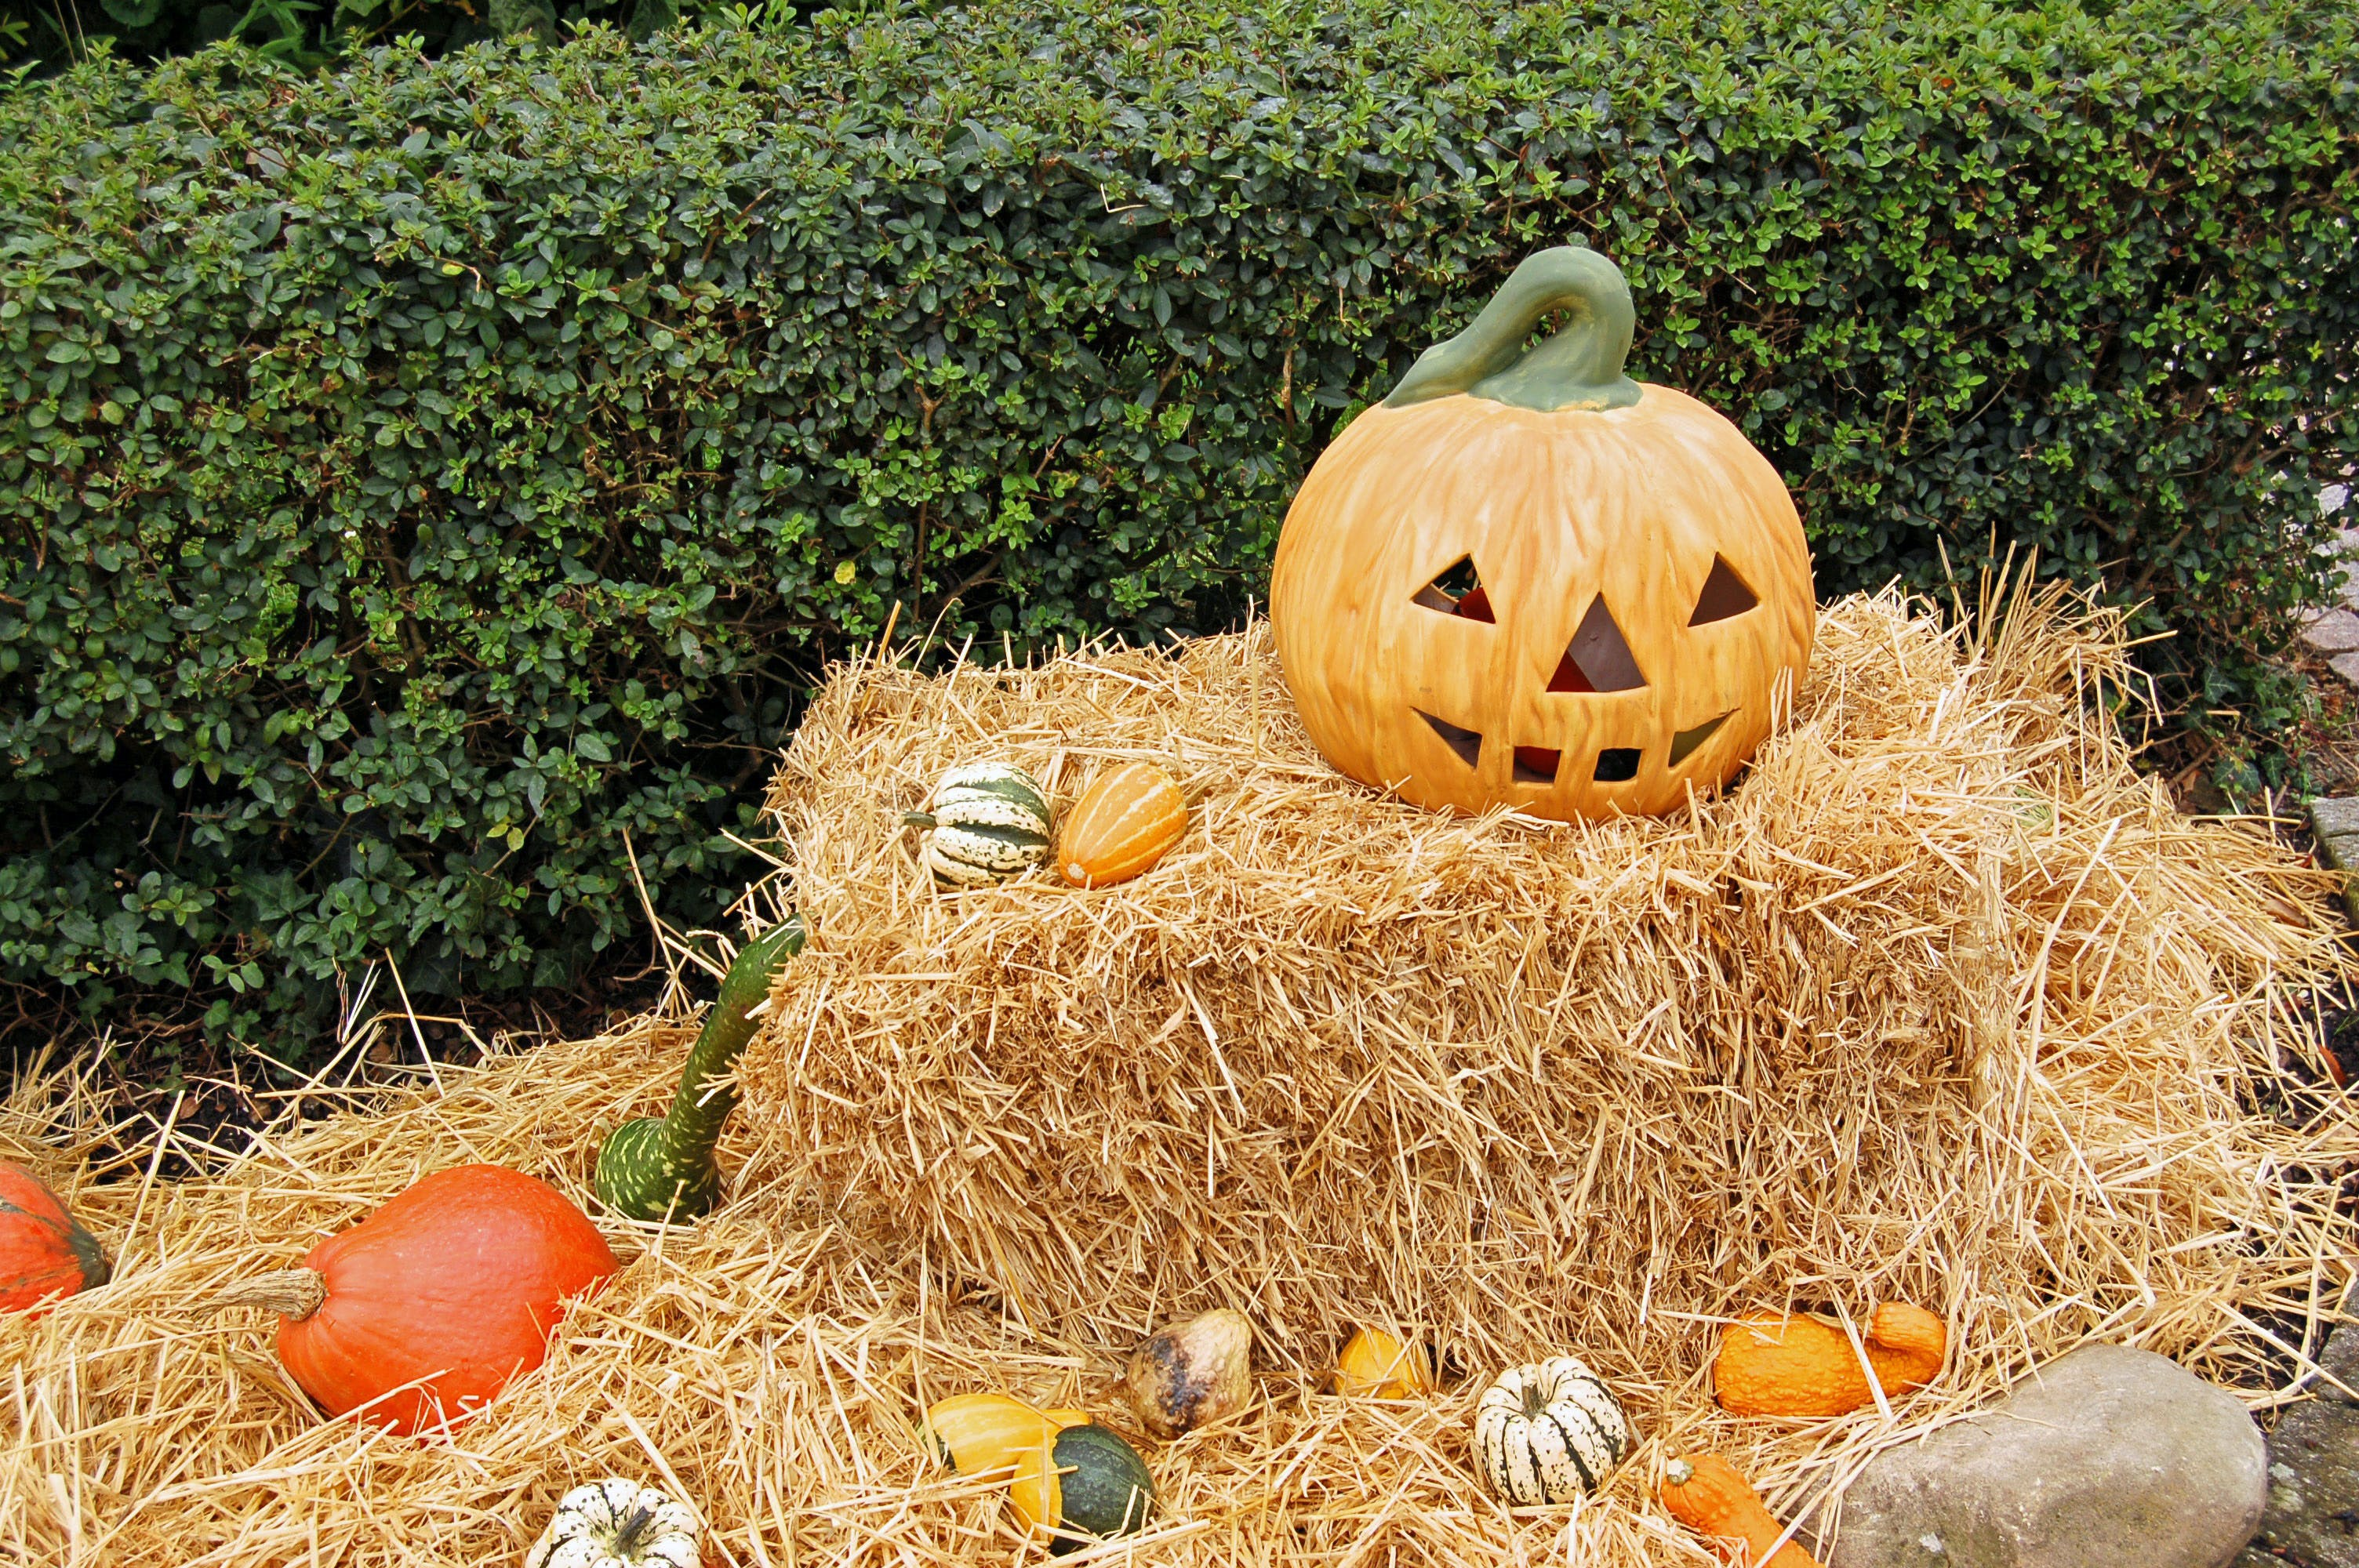 Jack-o'-lantern on Hay Stack during Day